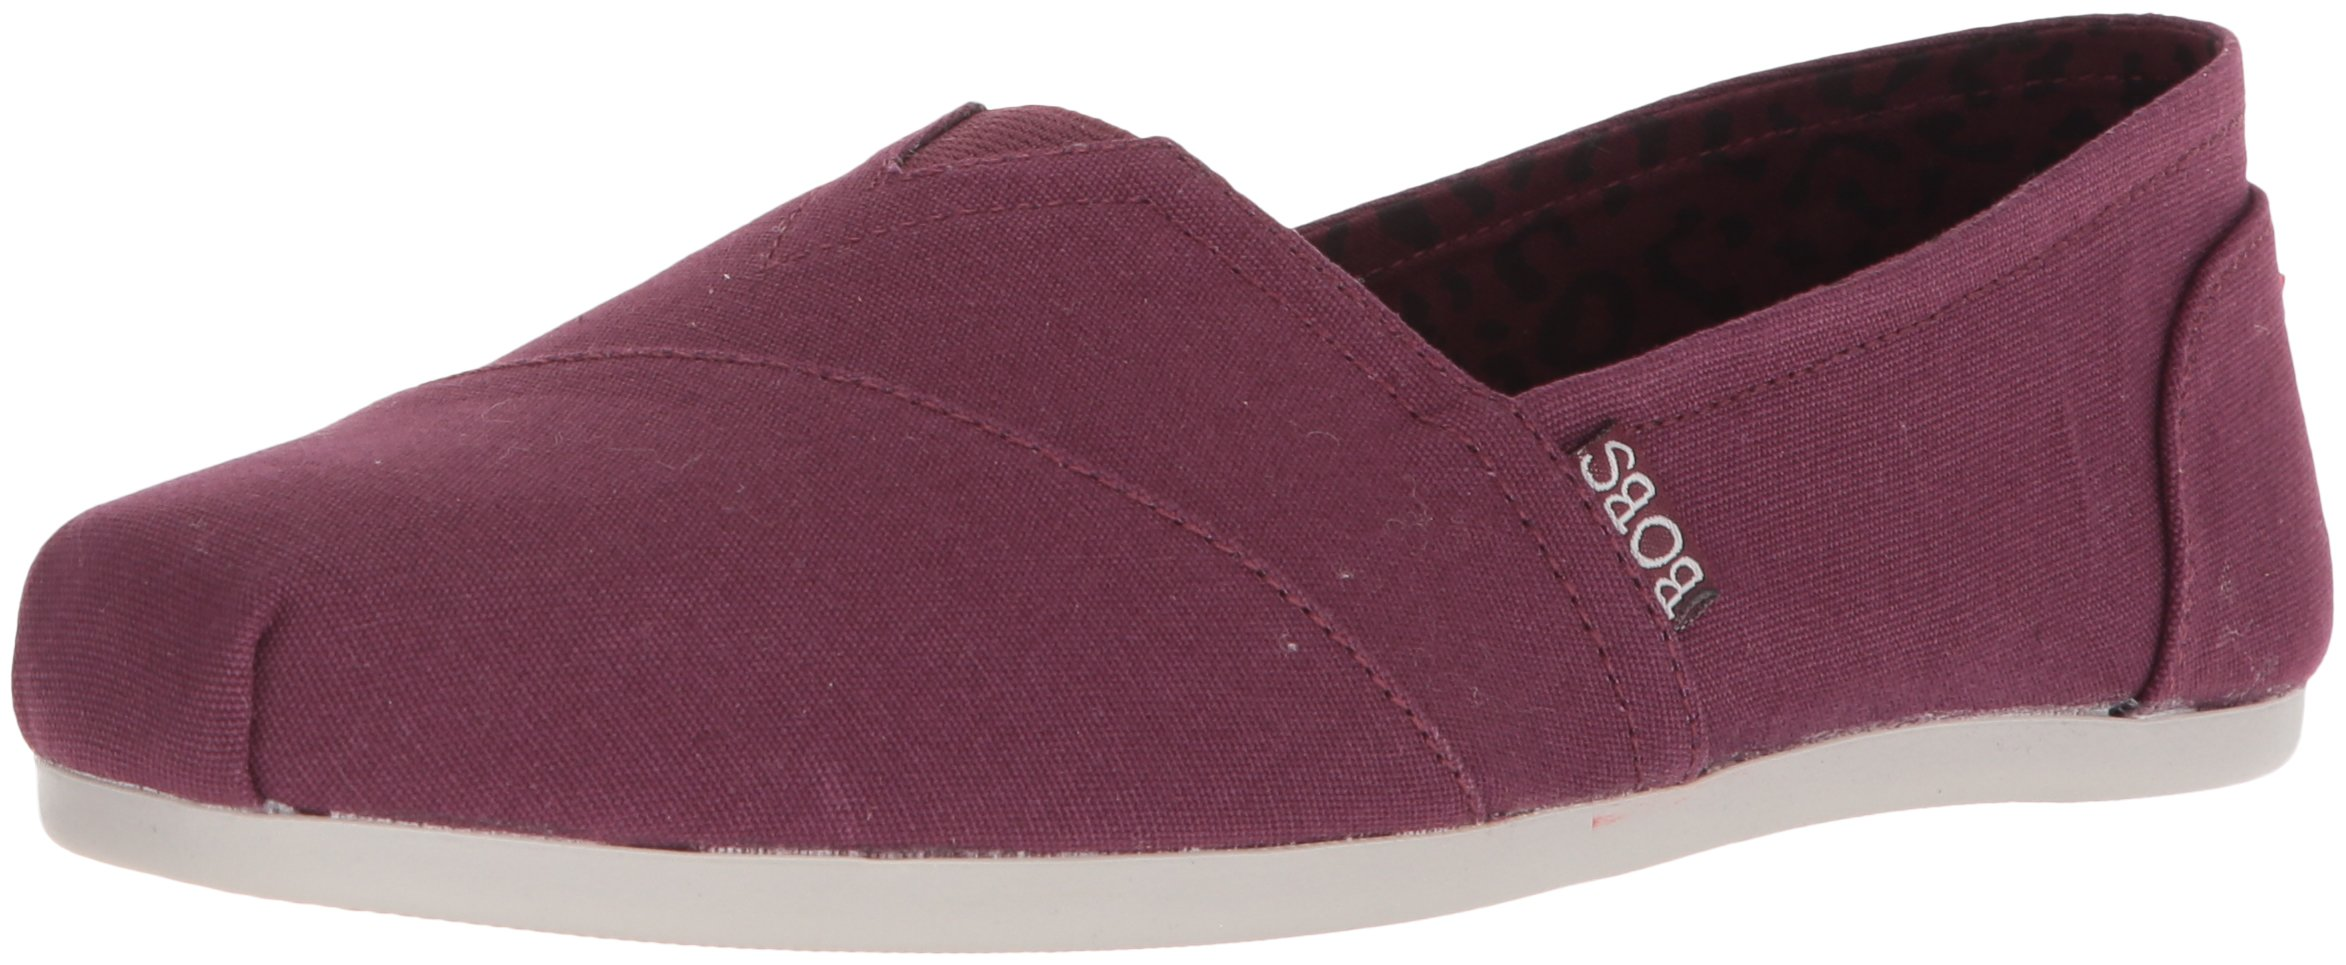 Skechers BOBS from Women's Plush-Peace and Love Ballet Flat, Burgundy, 8.5 M US by Skechers (Image #1)